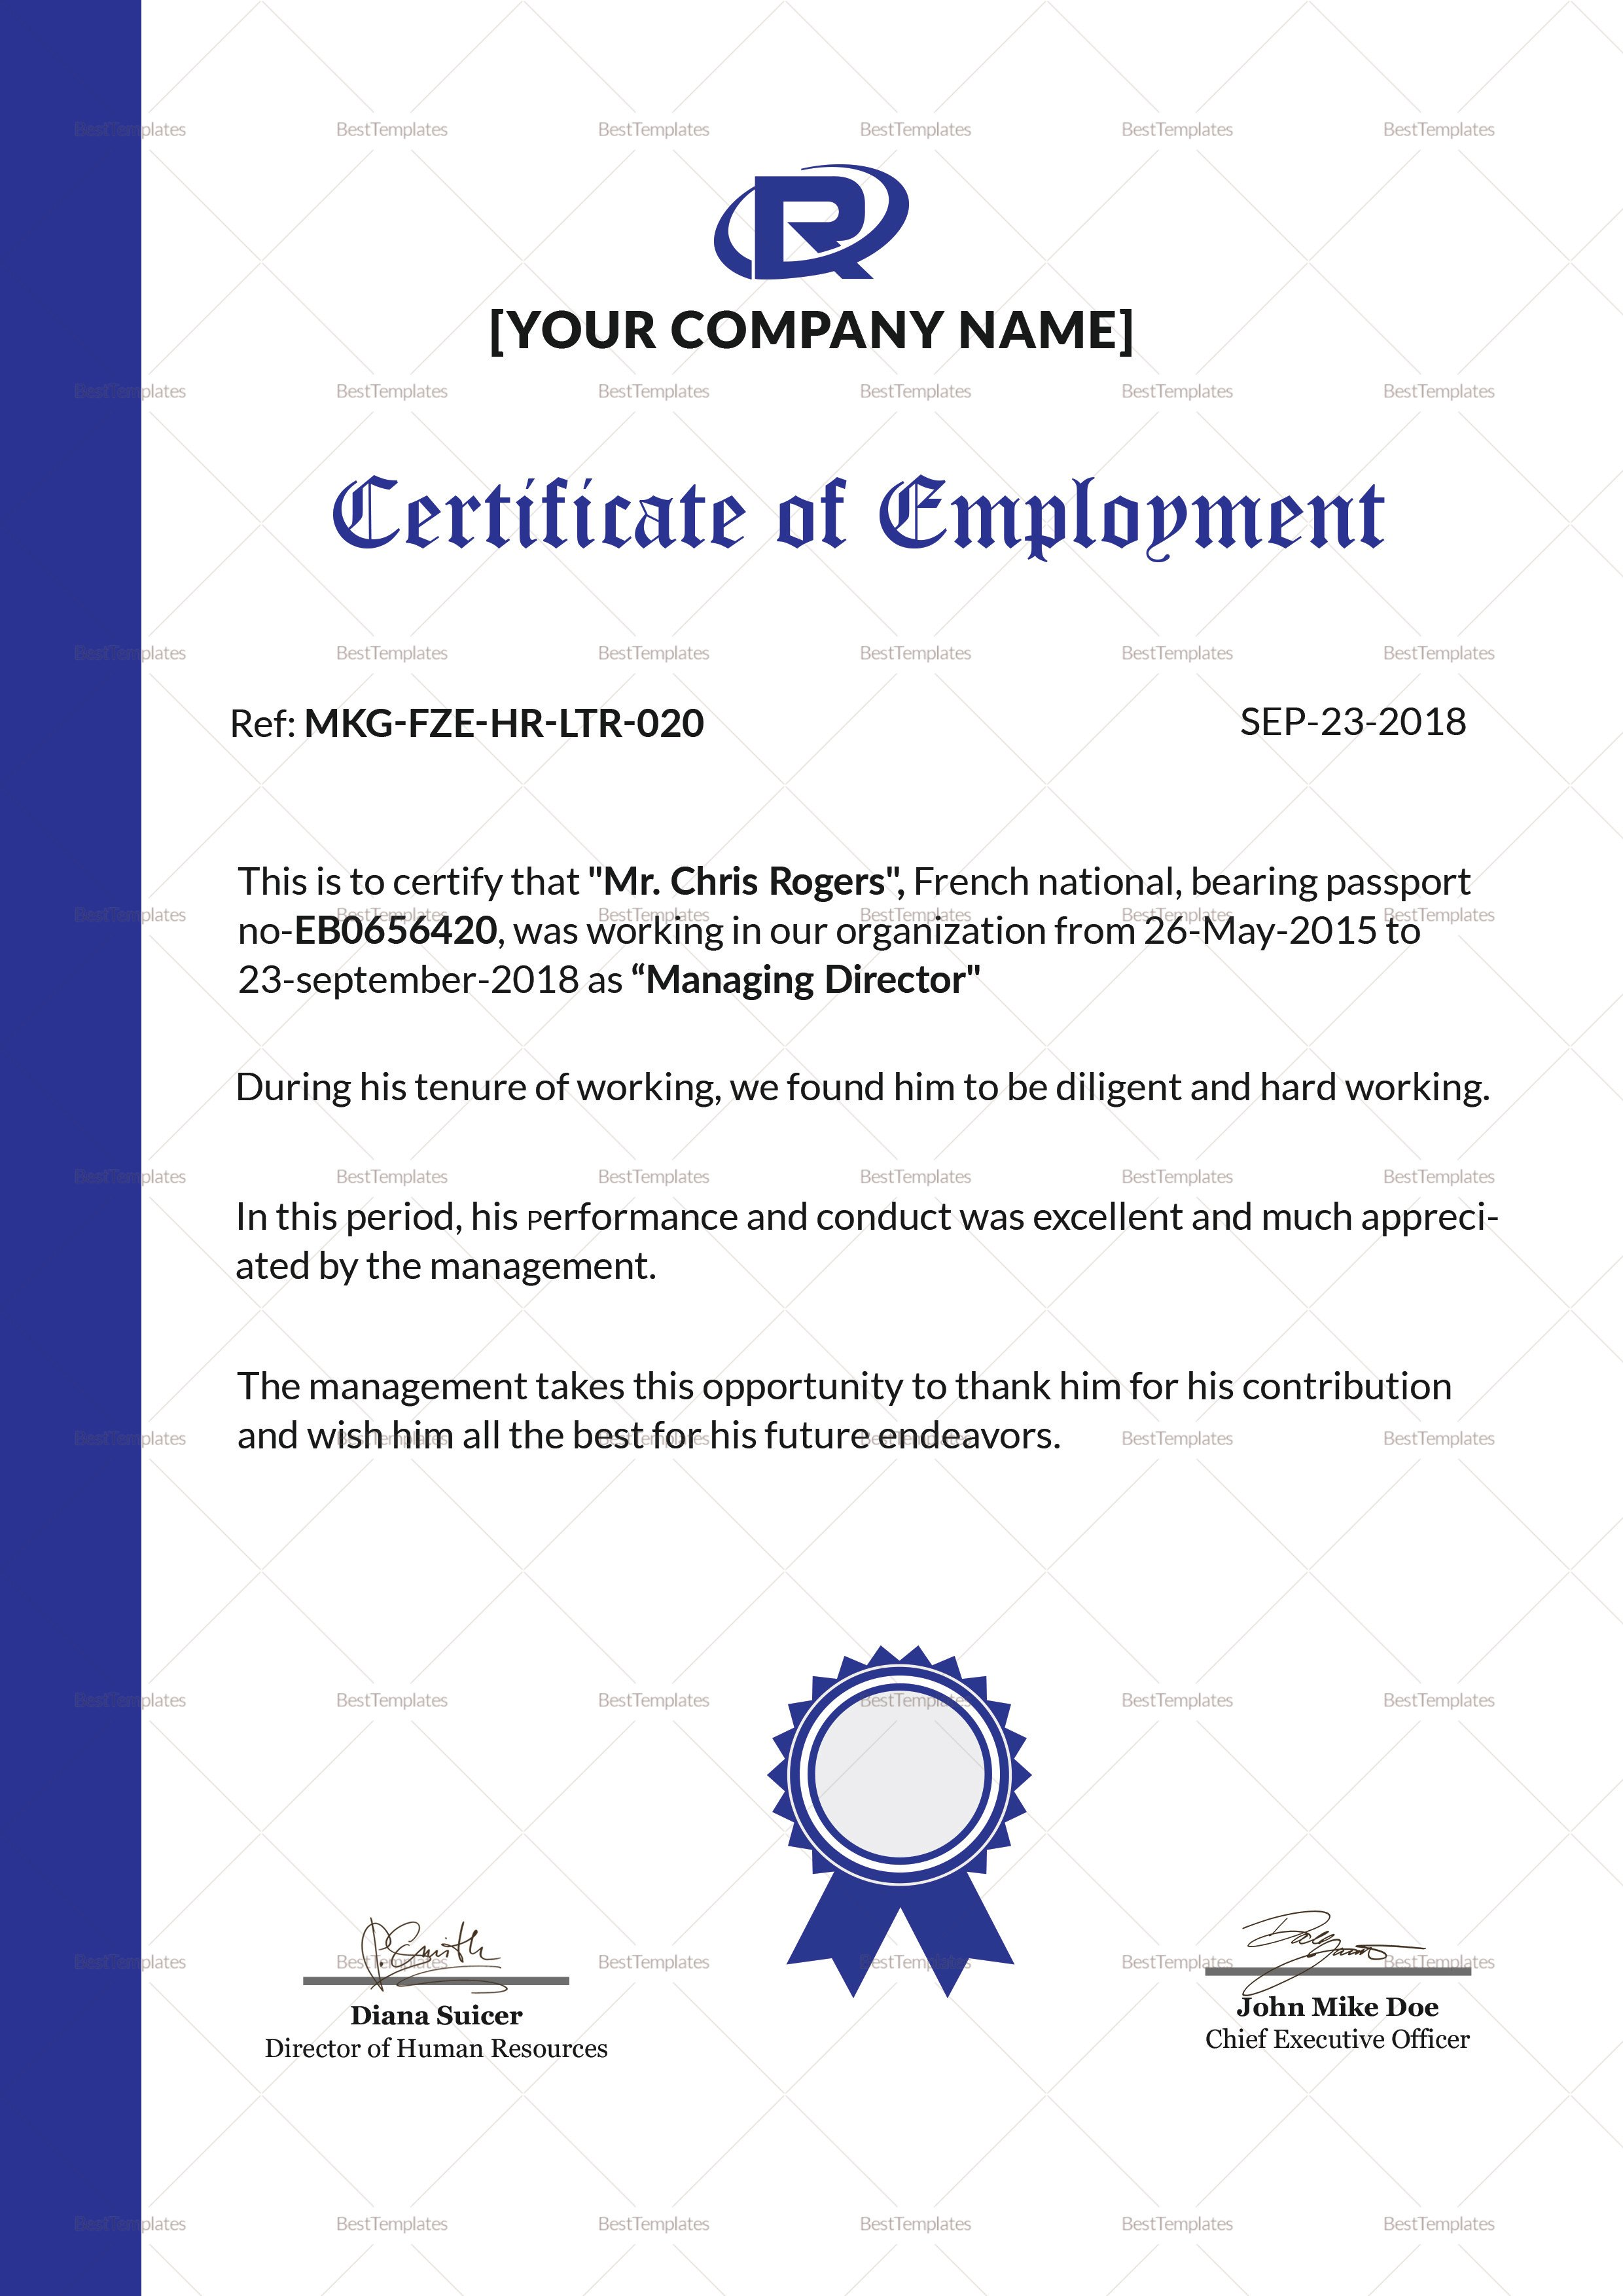 Certificate Of Employment Template Excellent Employment Certificate Design Template In Psd Word